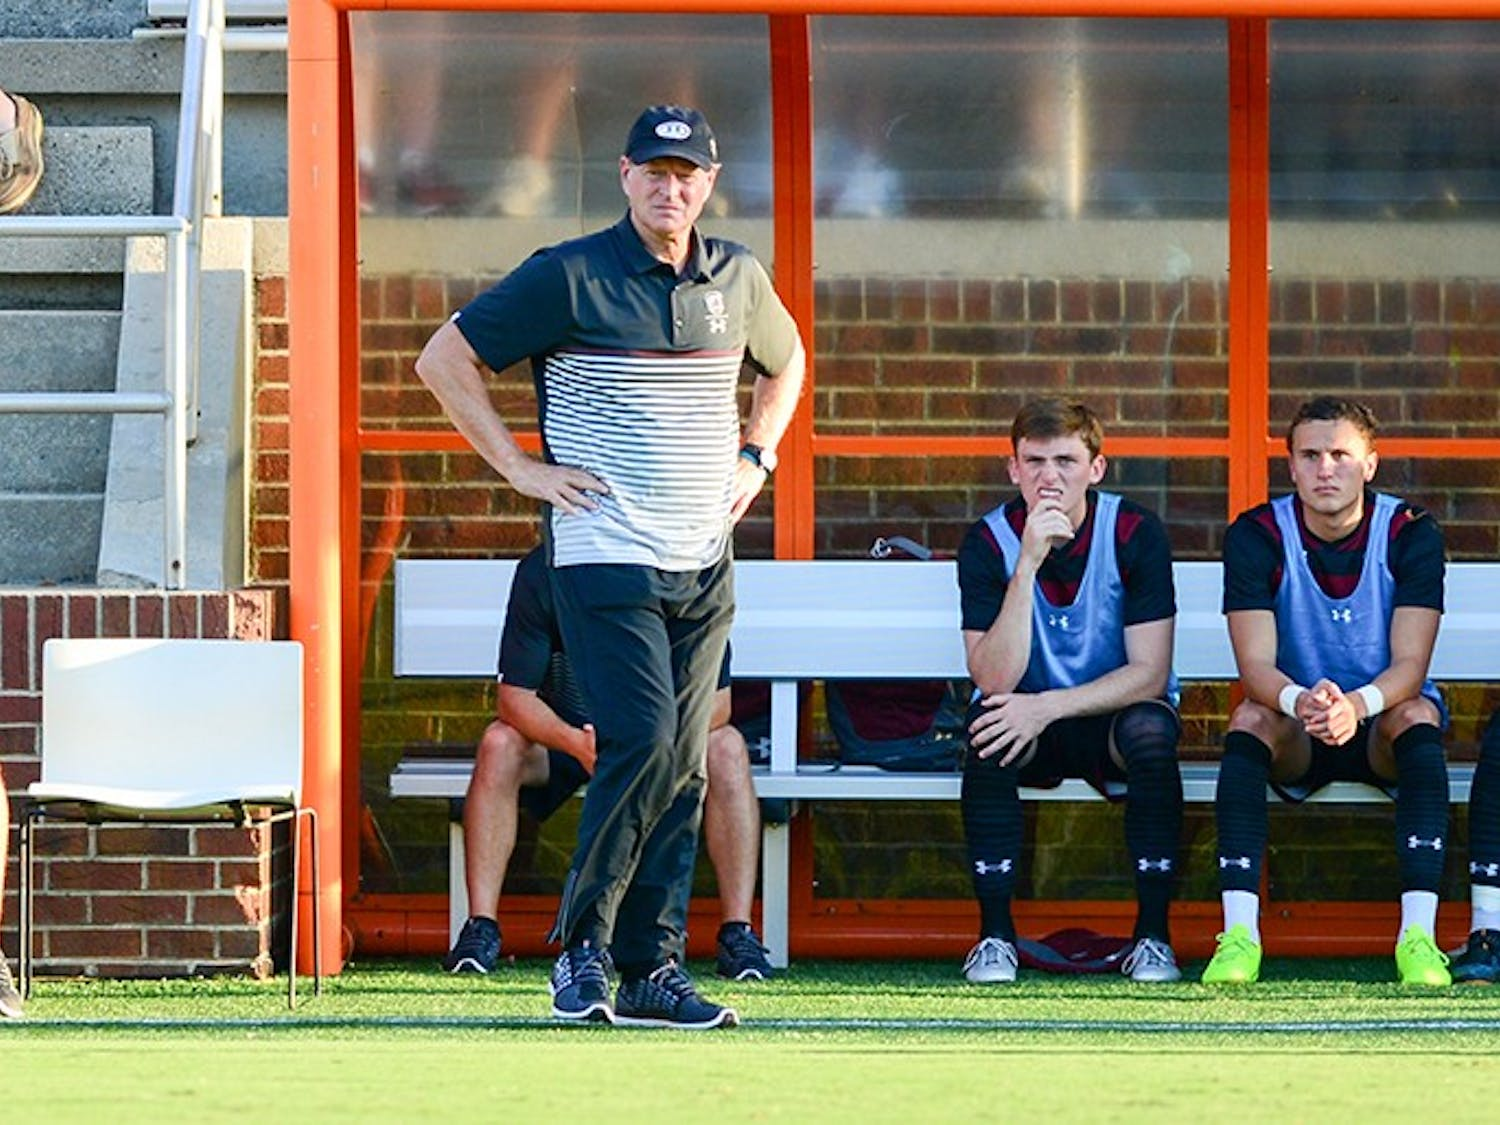 Mark Berson, head coach of South Carolina men's soccer, stands in front of his player sitting on the bench.